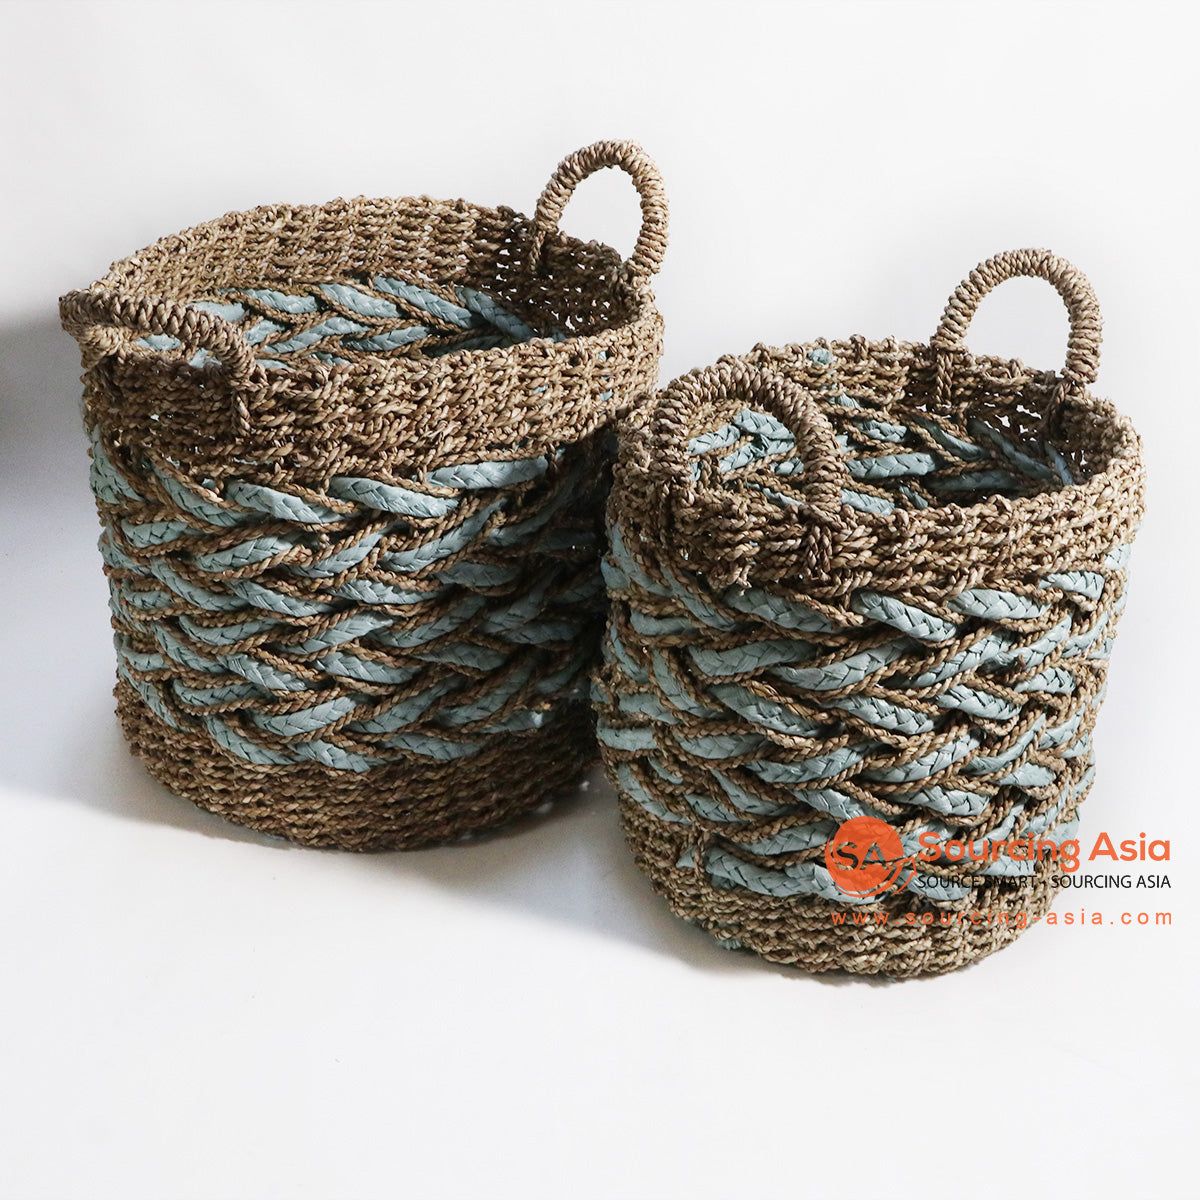 HBSC137 SET OF 2 MENDONG AND SEA GRASS BASKETS